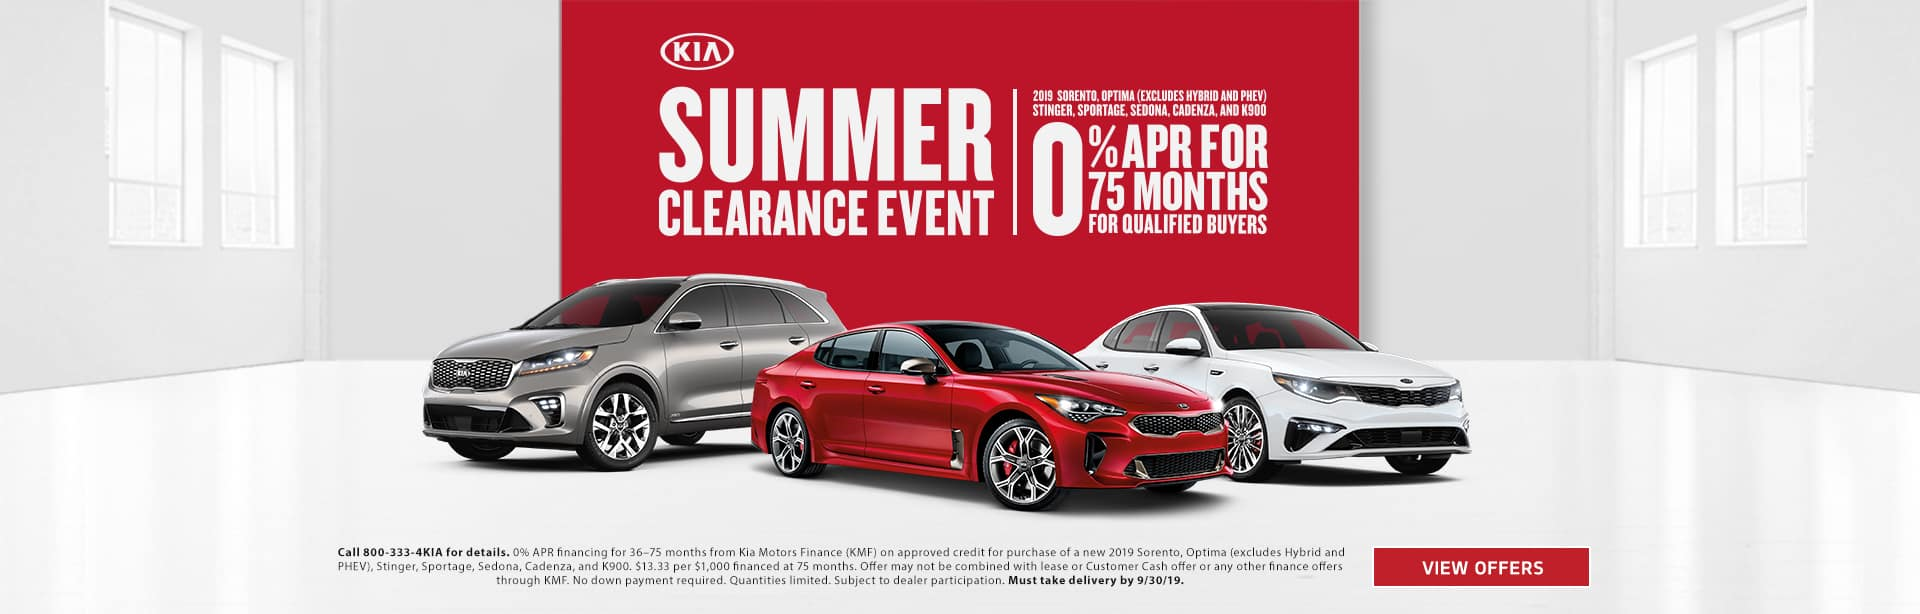 Summer Clearance Event 201918